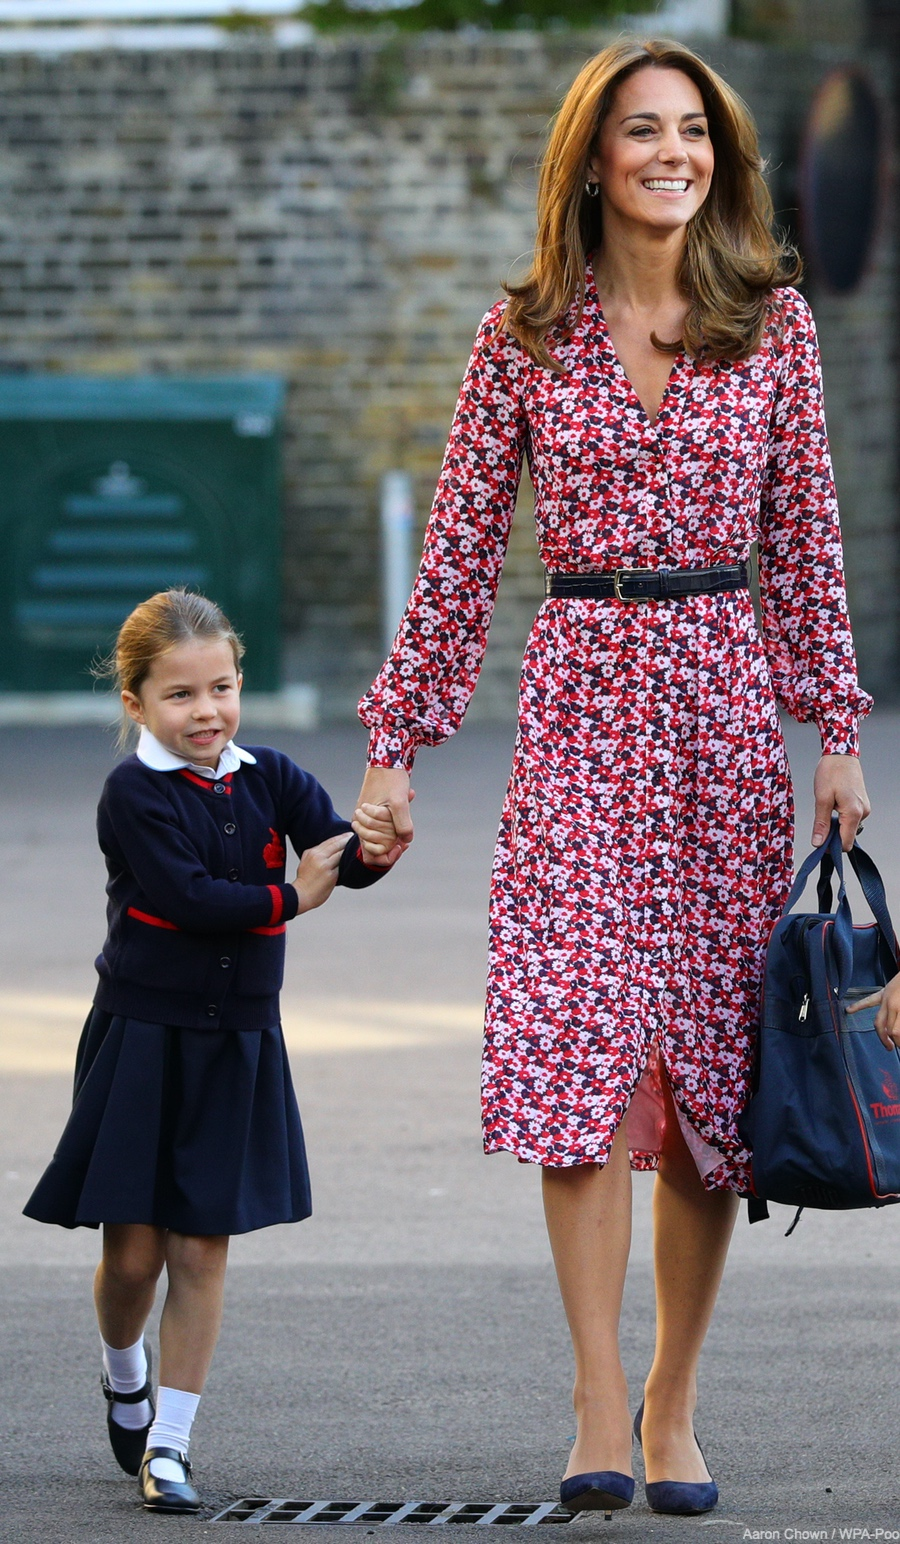 Kate Middleton takes Princess Charlotte to school for her first day. The Duchess is wearing a pink floral dress.